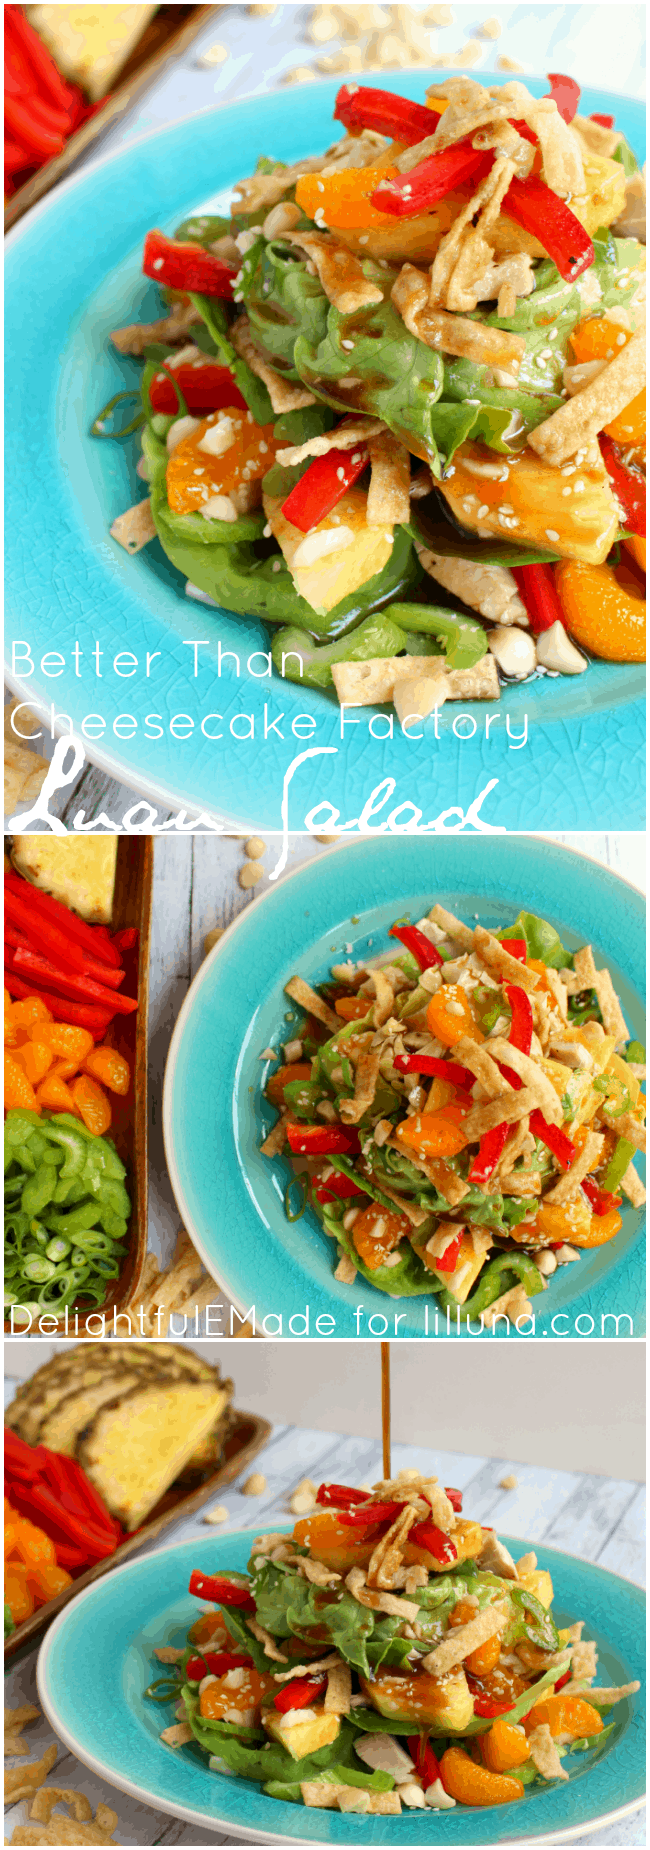 Loaded with sweet, tropical flavors, this delicious Luau Salad is BETTER than what you'll get at Cheesecake Factory! Fresh pineapple, mandarin oranges, celery, onions, wantons and a sweet pineapple balsamic dressing top this easy-to-make layered salad. Perfect for summer on the patio!